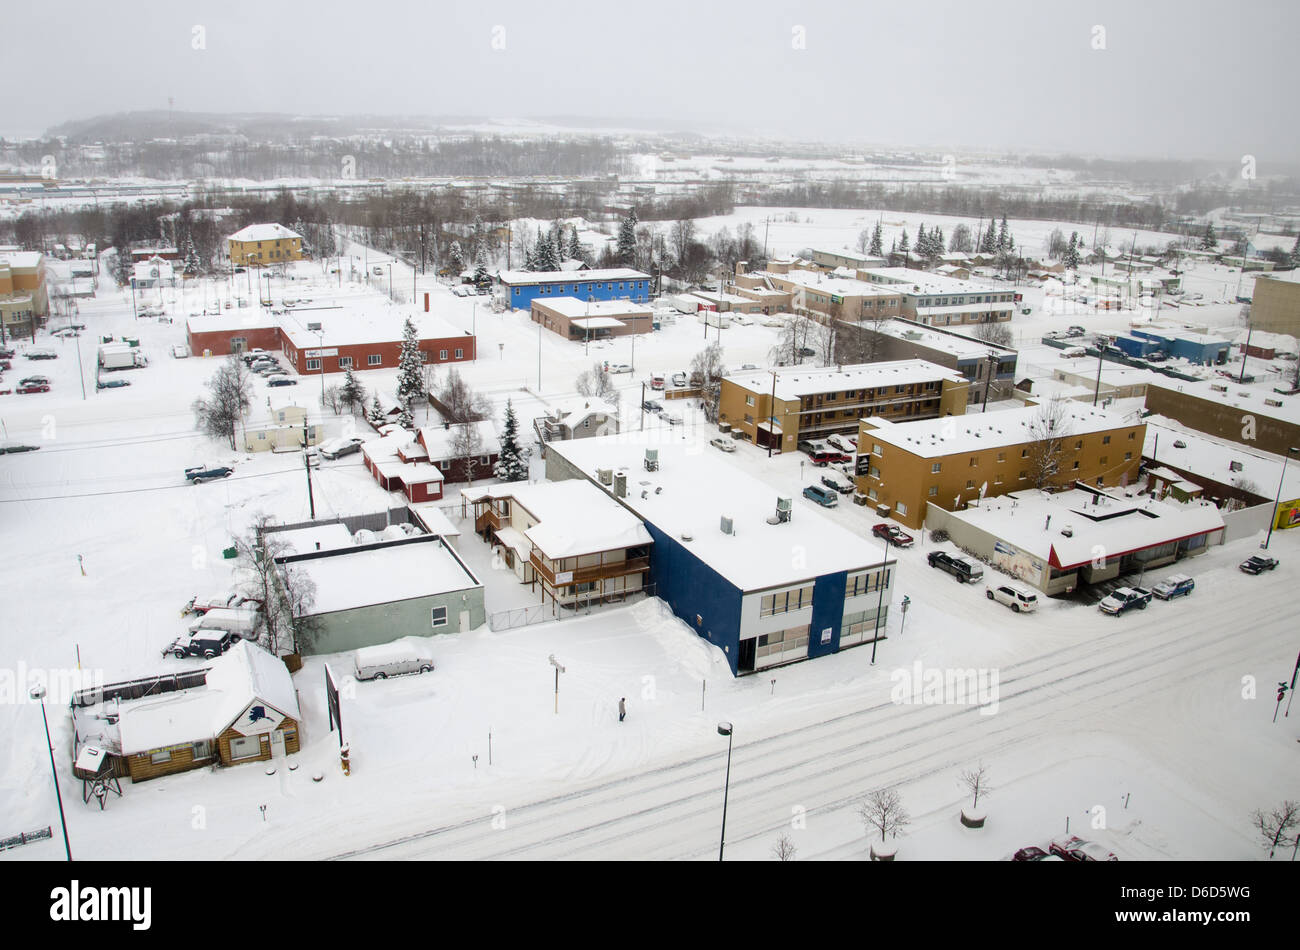 Anchorage in the snow - Stock Image